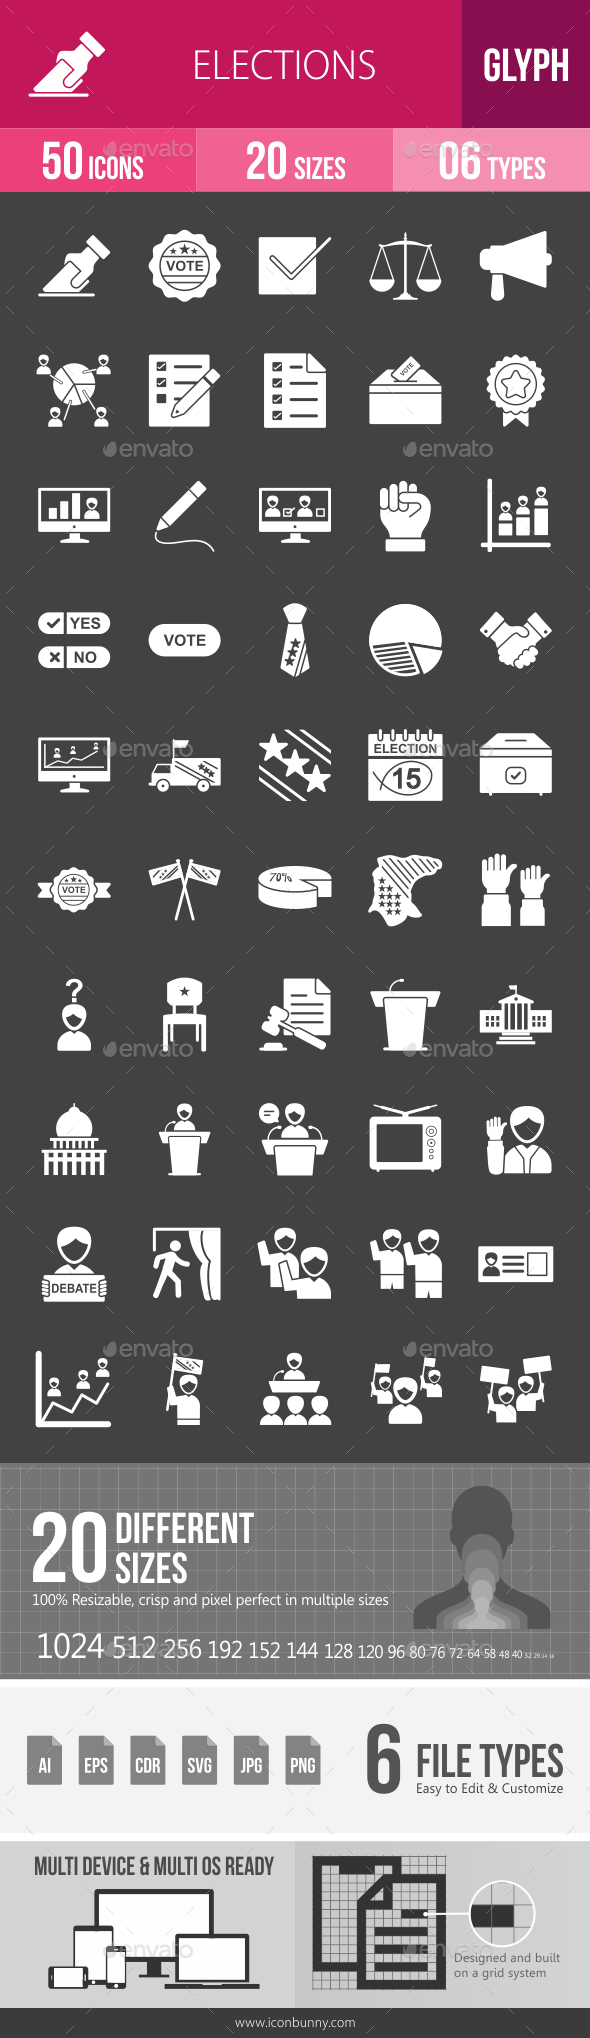 Elections Glyph Inverted Icons - Icons